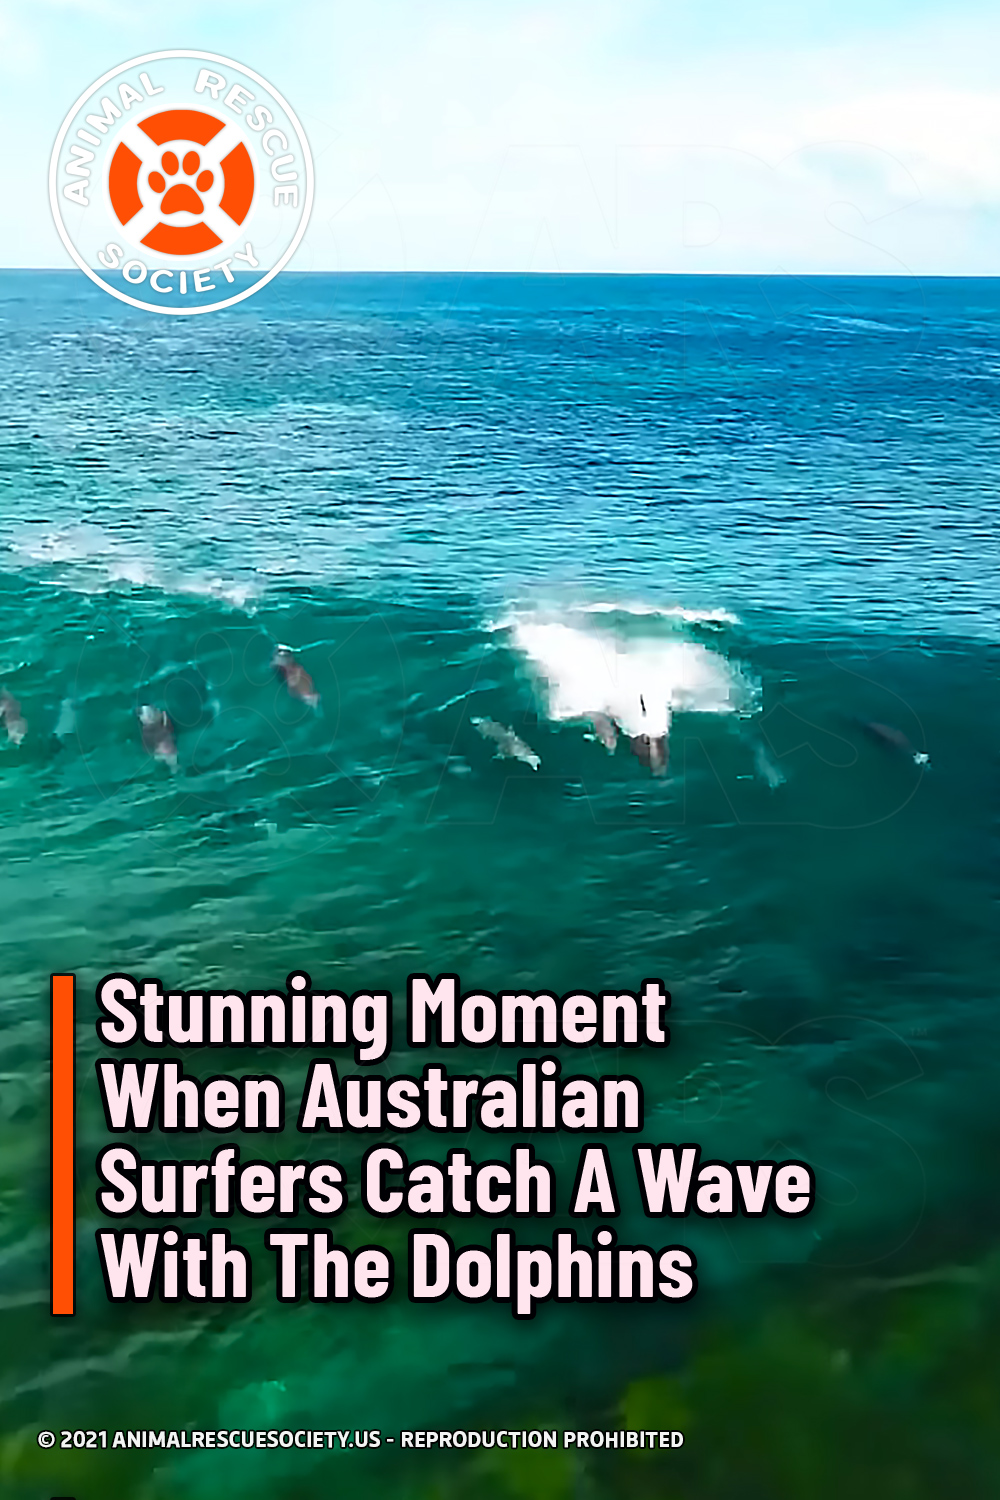 Stunning Moment When Australian Surfers Catch A Wave With The Dolphins